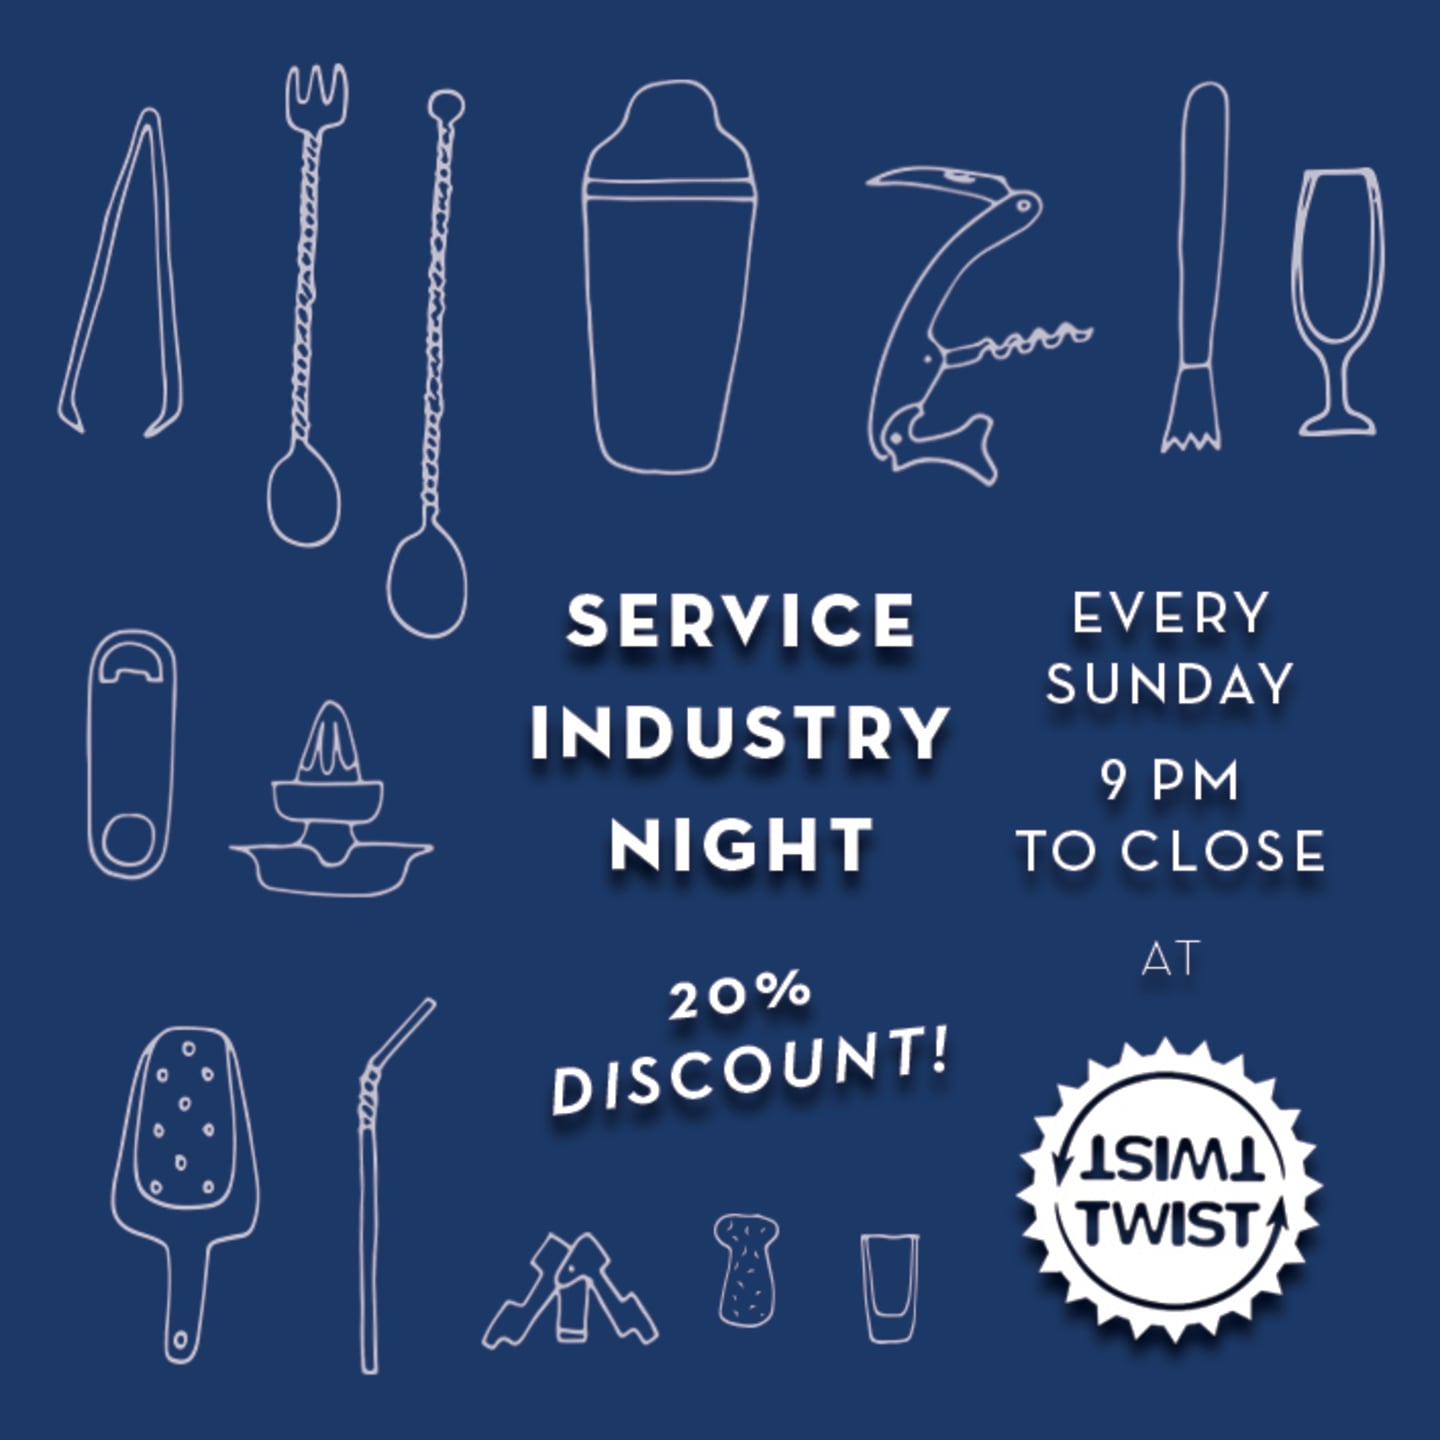 Sunday - Service Industry Night